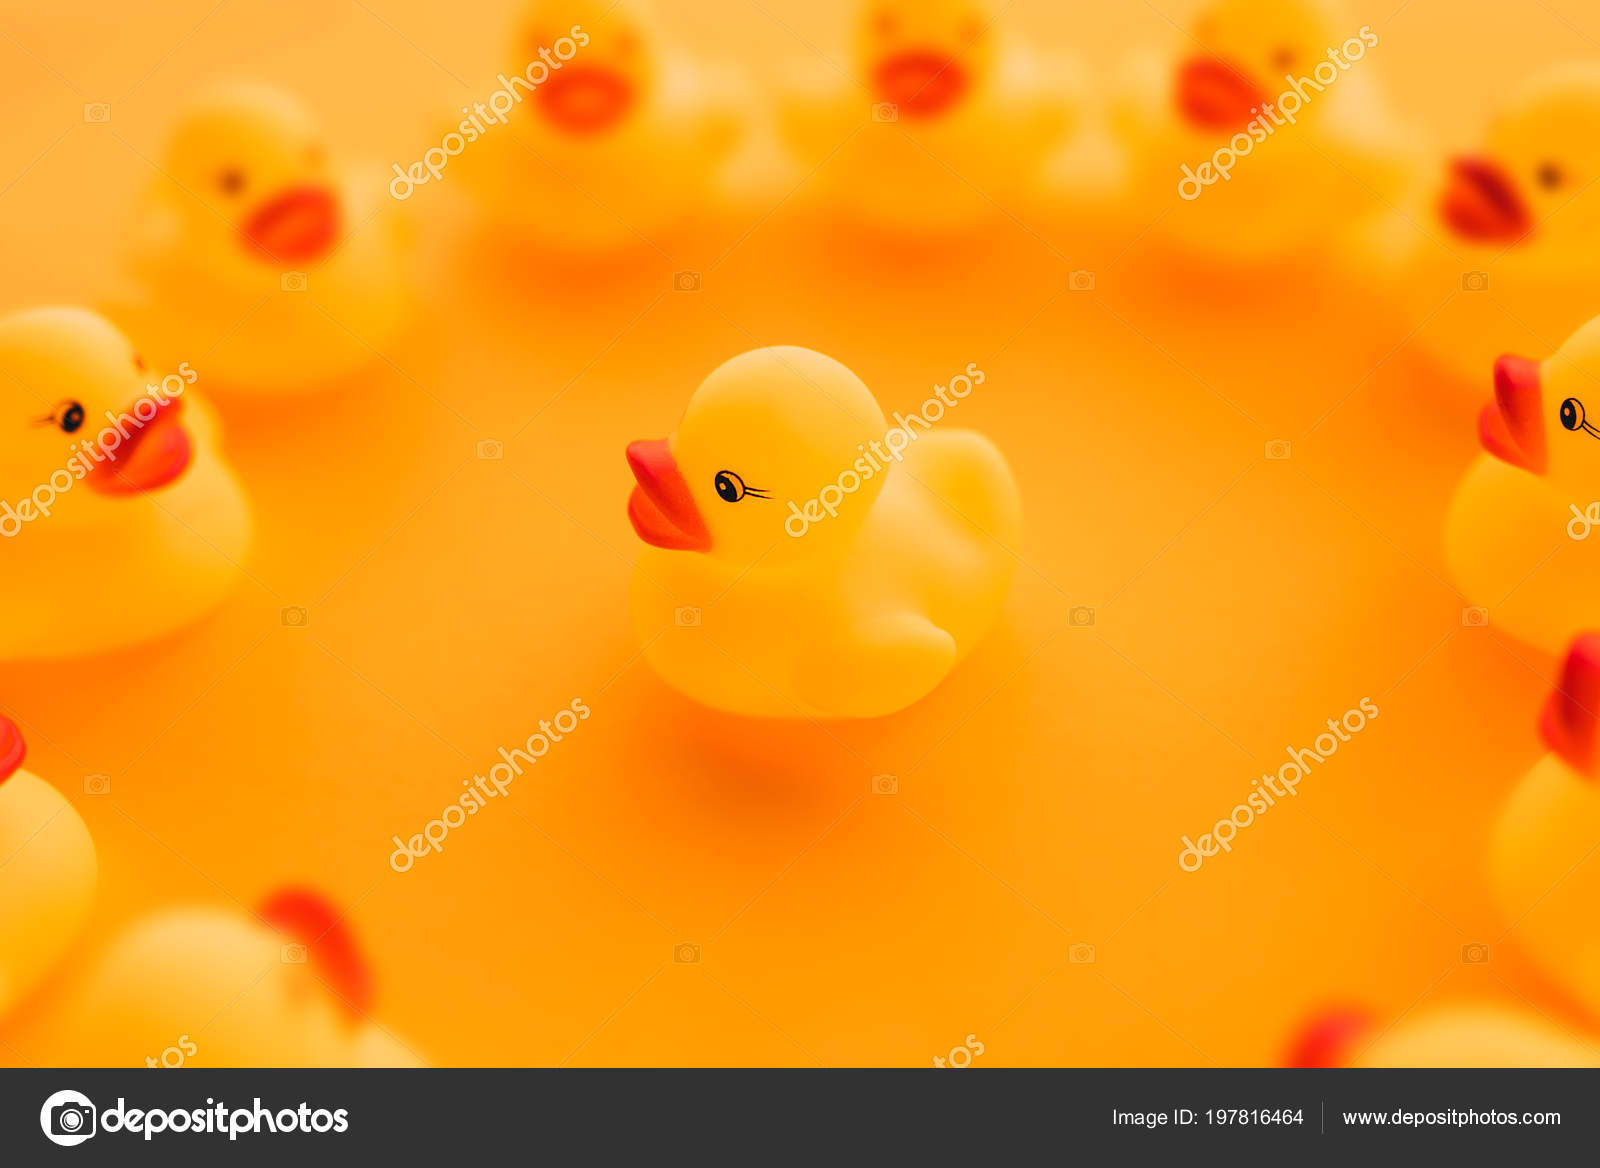 Rubber Ducks Leadership Concept Small Yellow Duckling Leader Talking ...